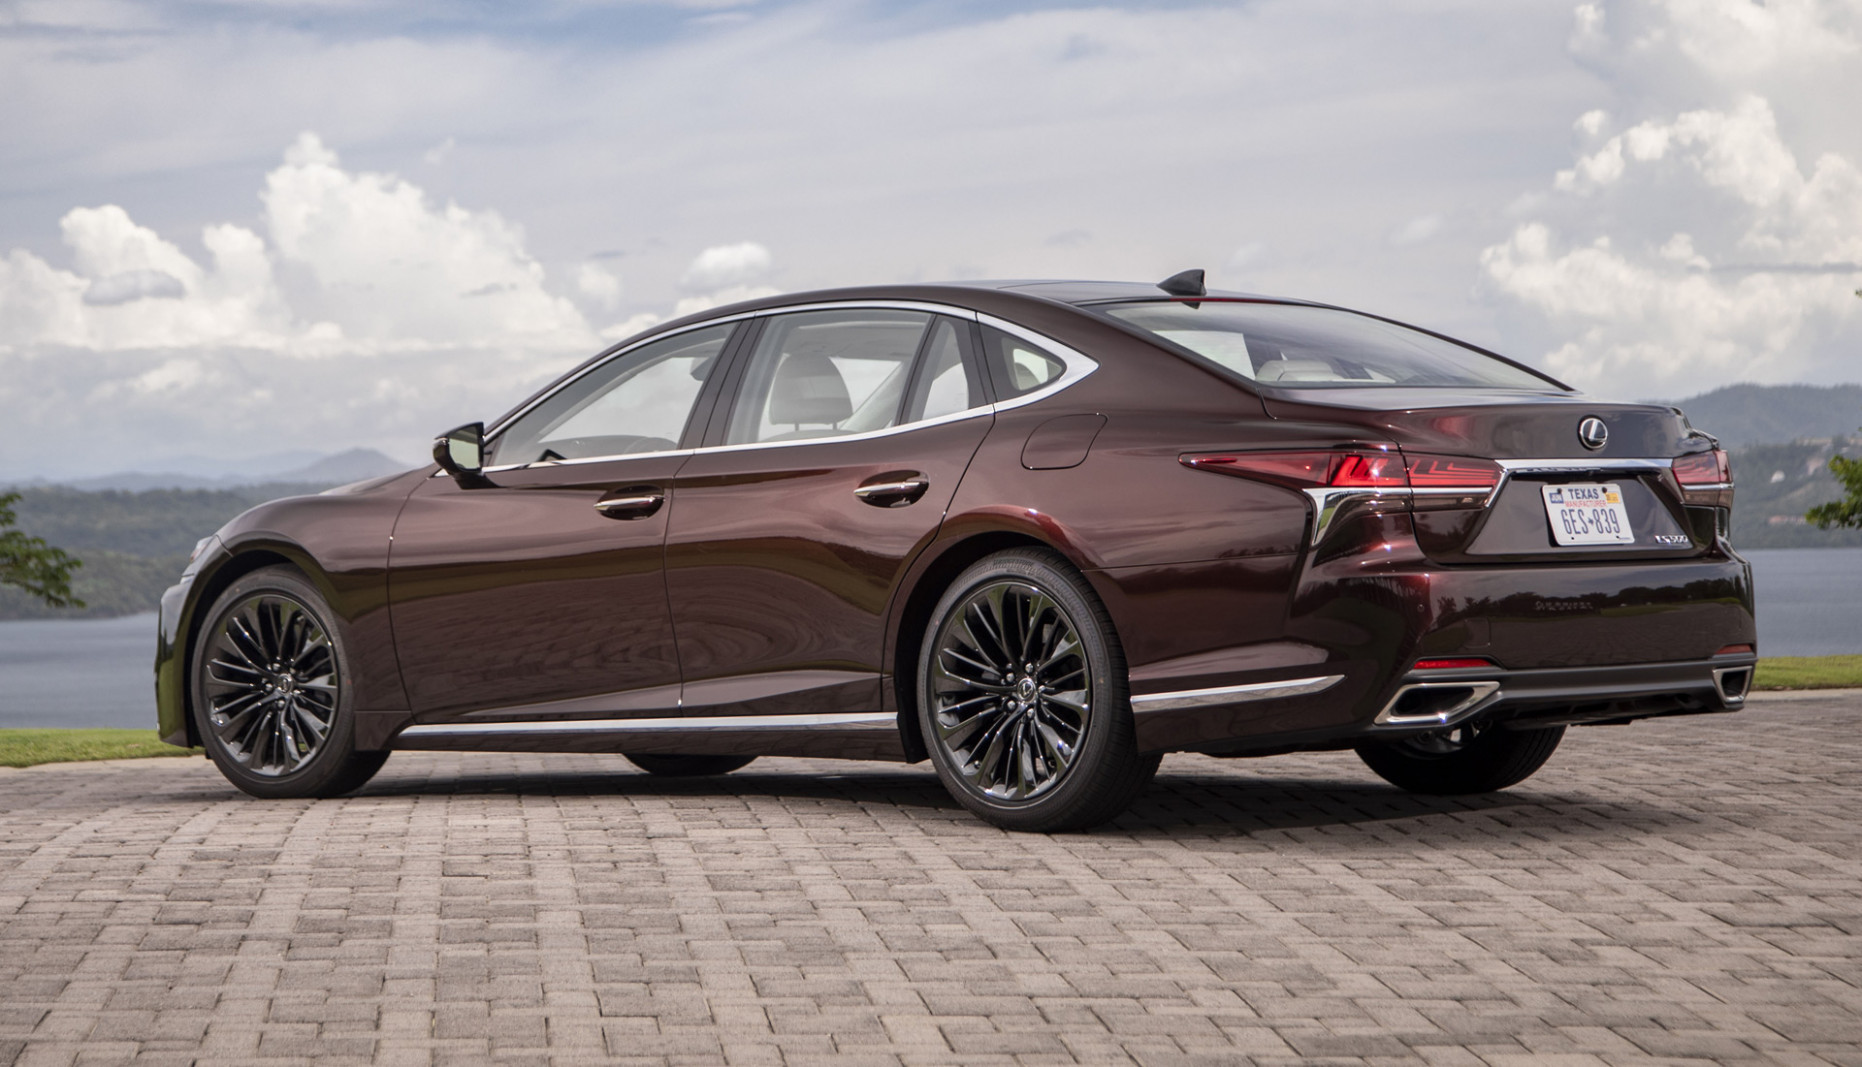 8 Lexus LS Review, Ratings, Specs, Prices, and Photos - The Car ...